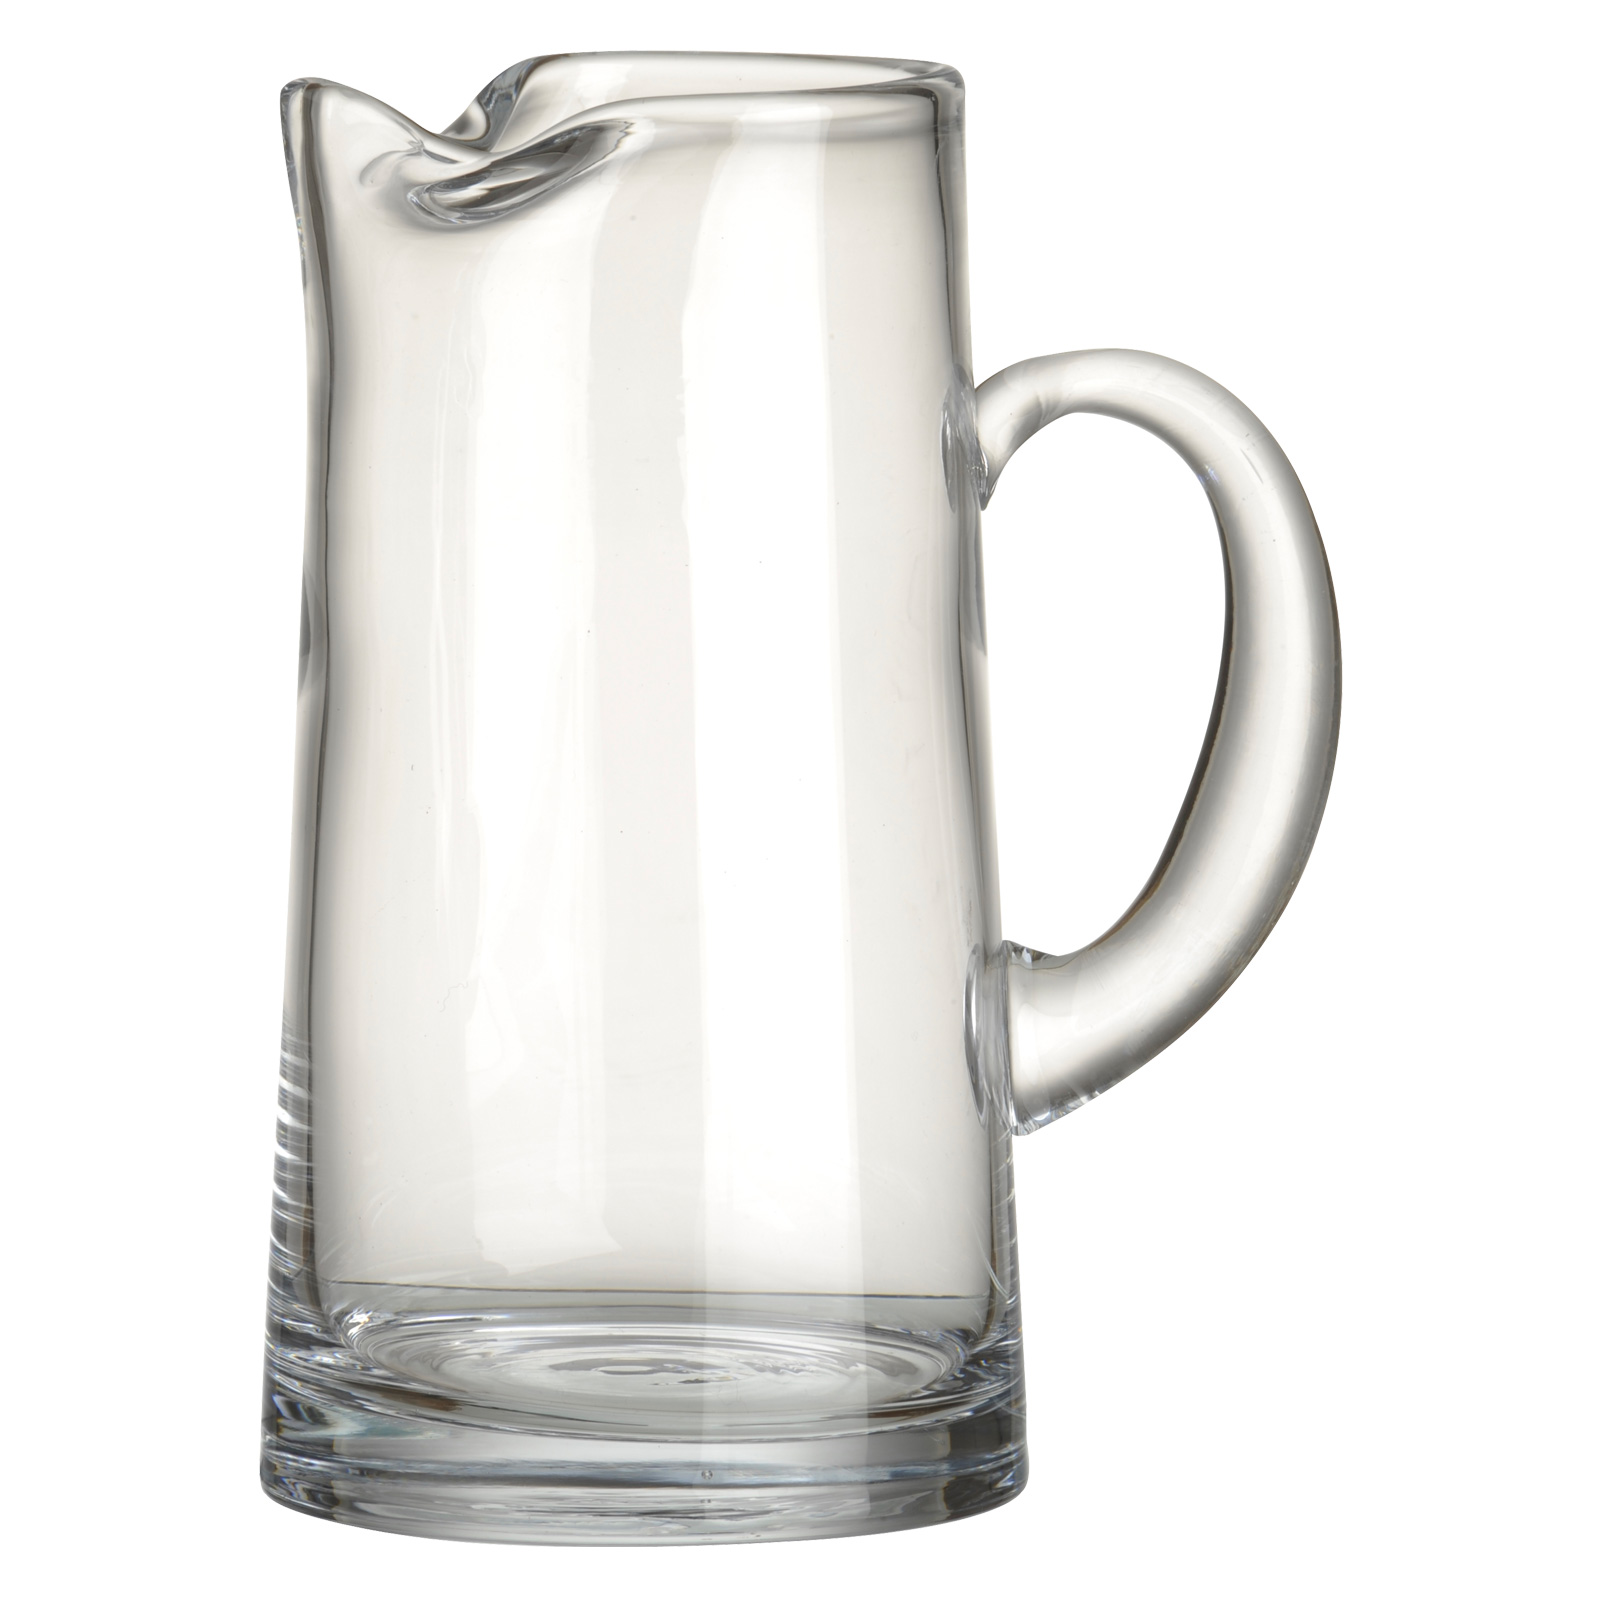 Simplicity Straight Sided Pitcher Large by Artland